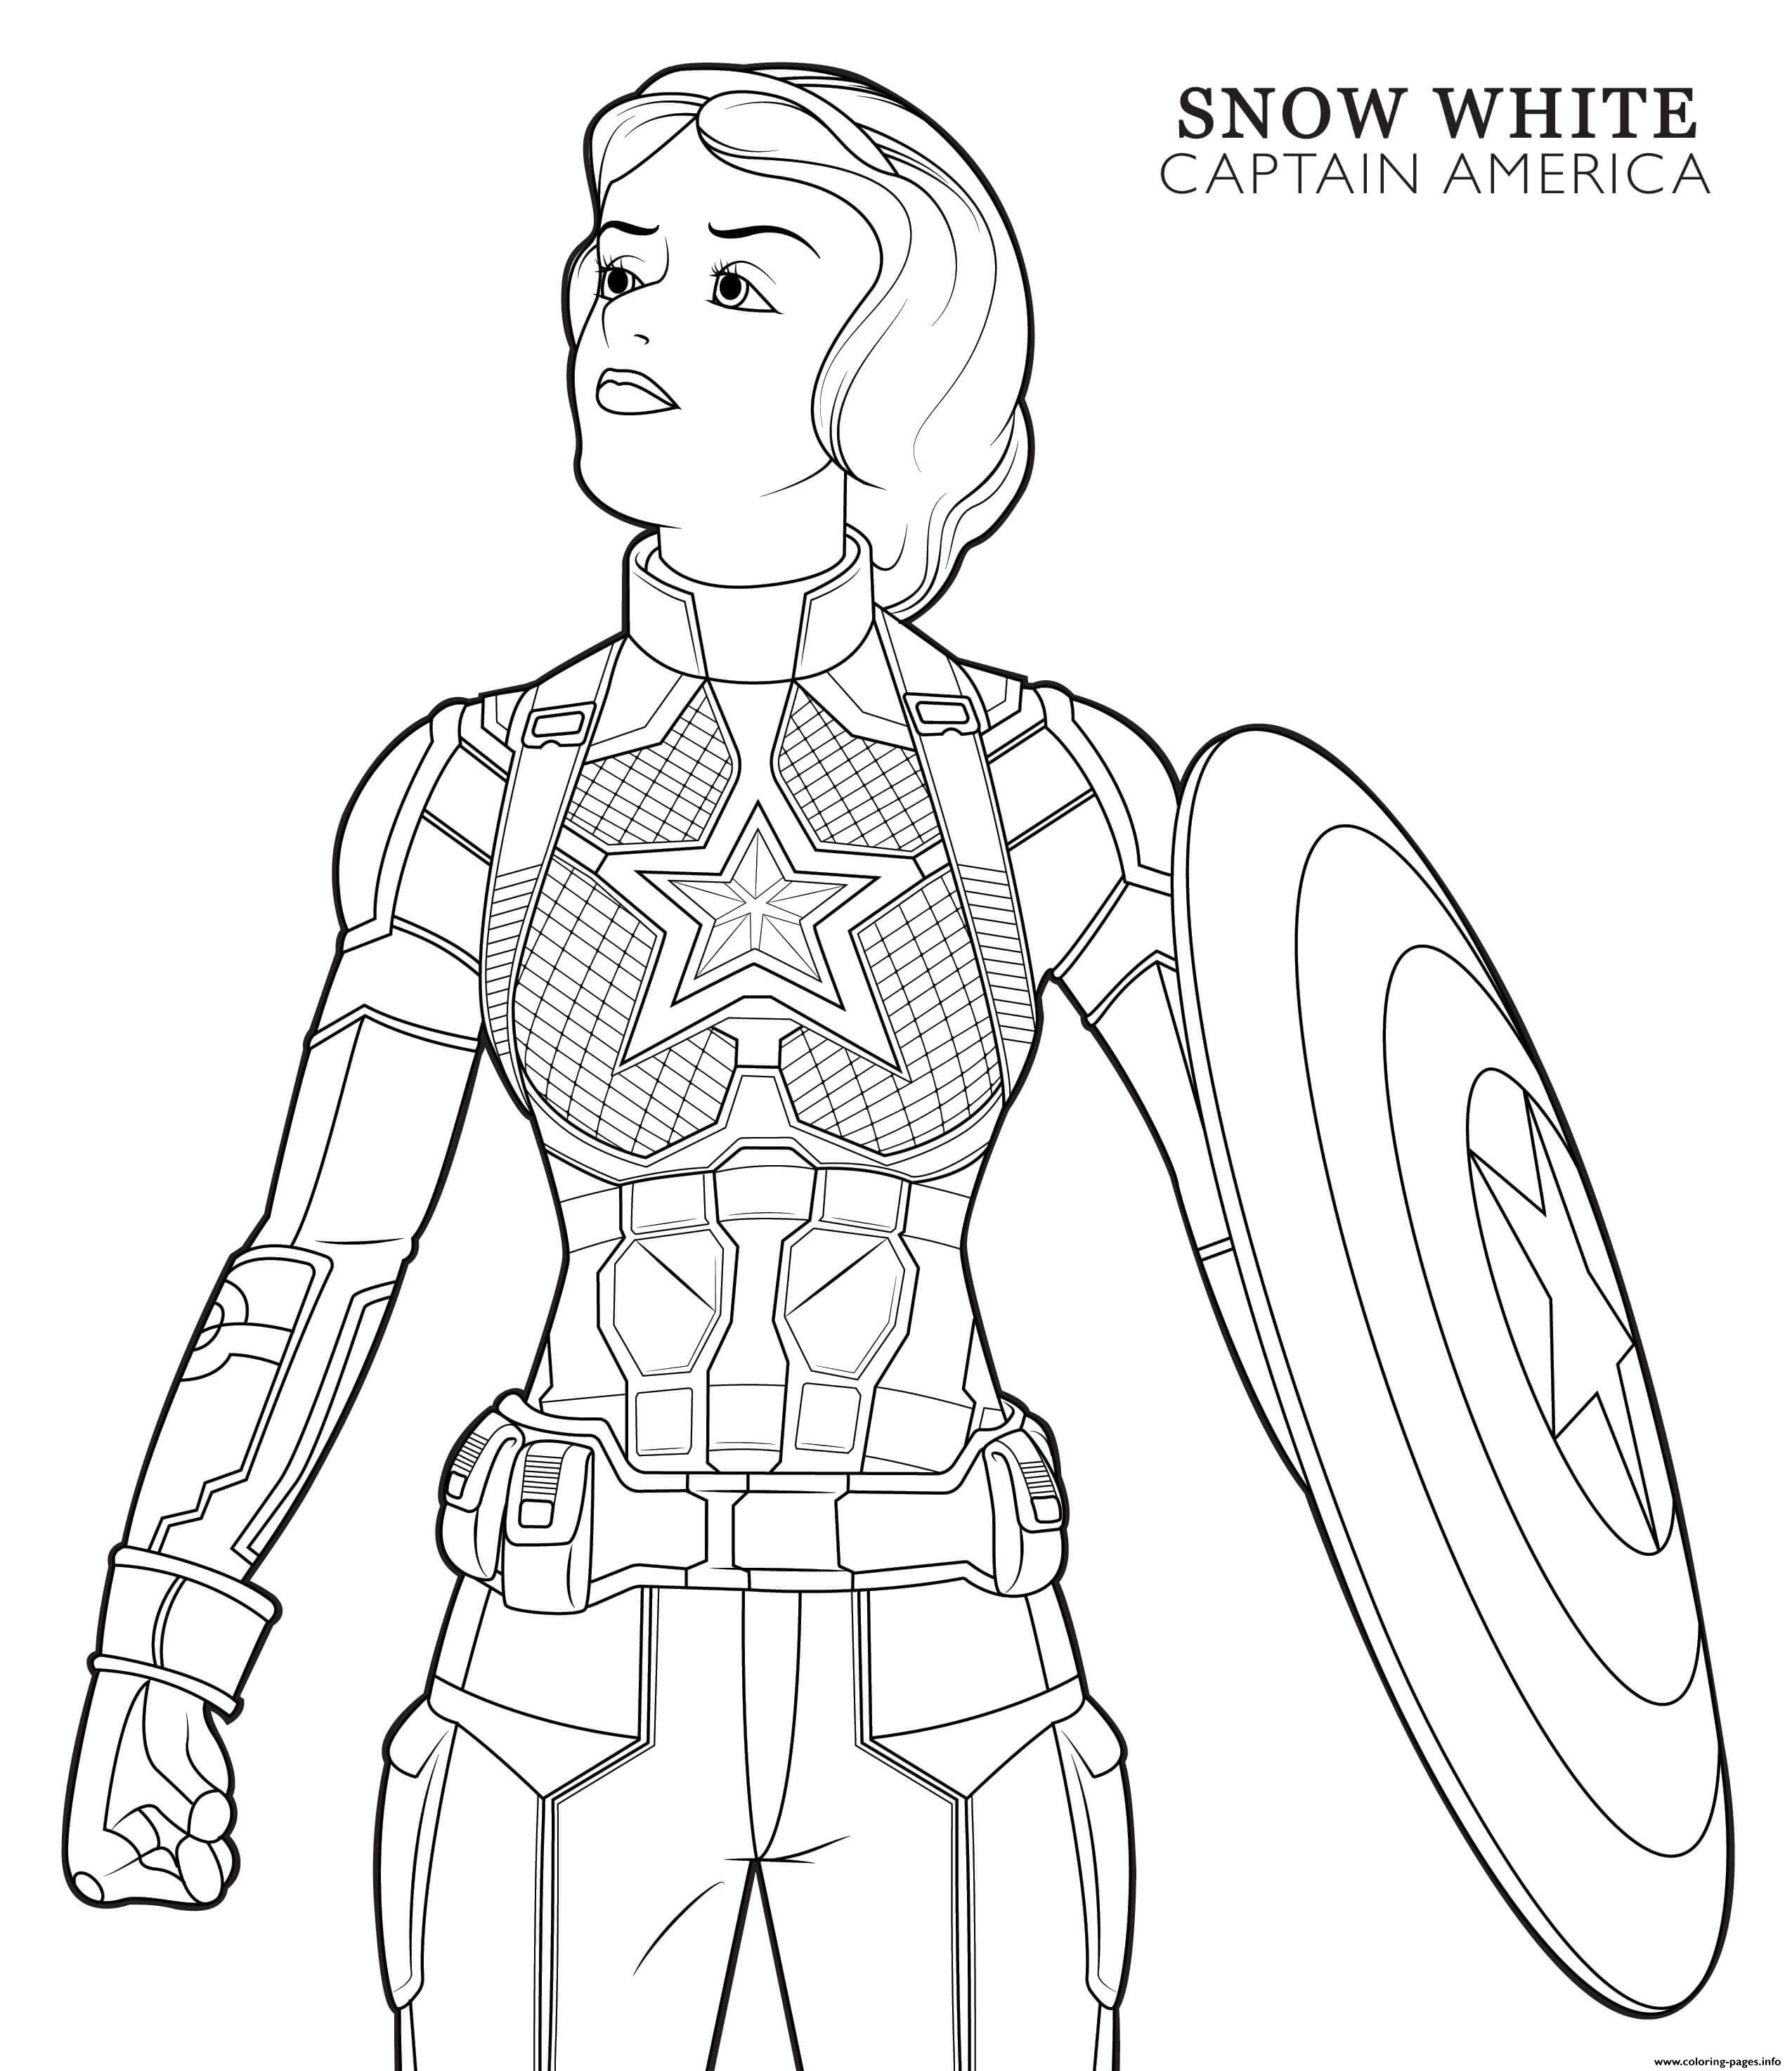 Captain America Snow White Disney Avengers coloring pages